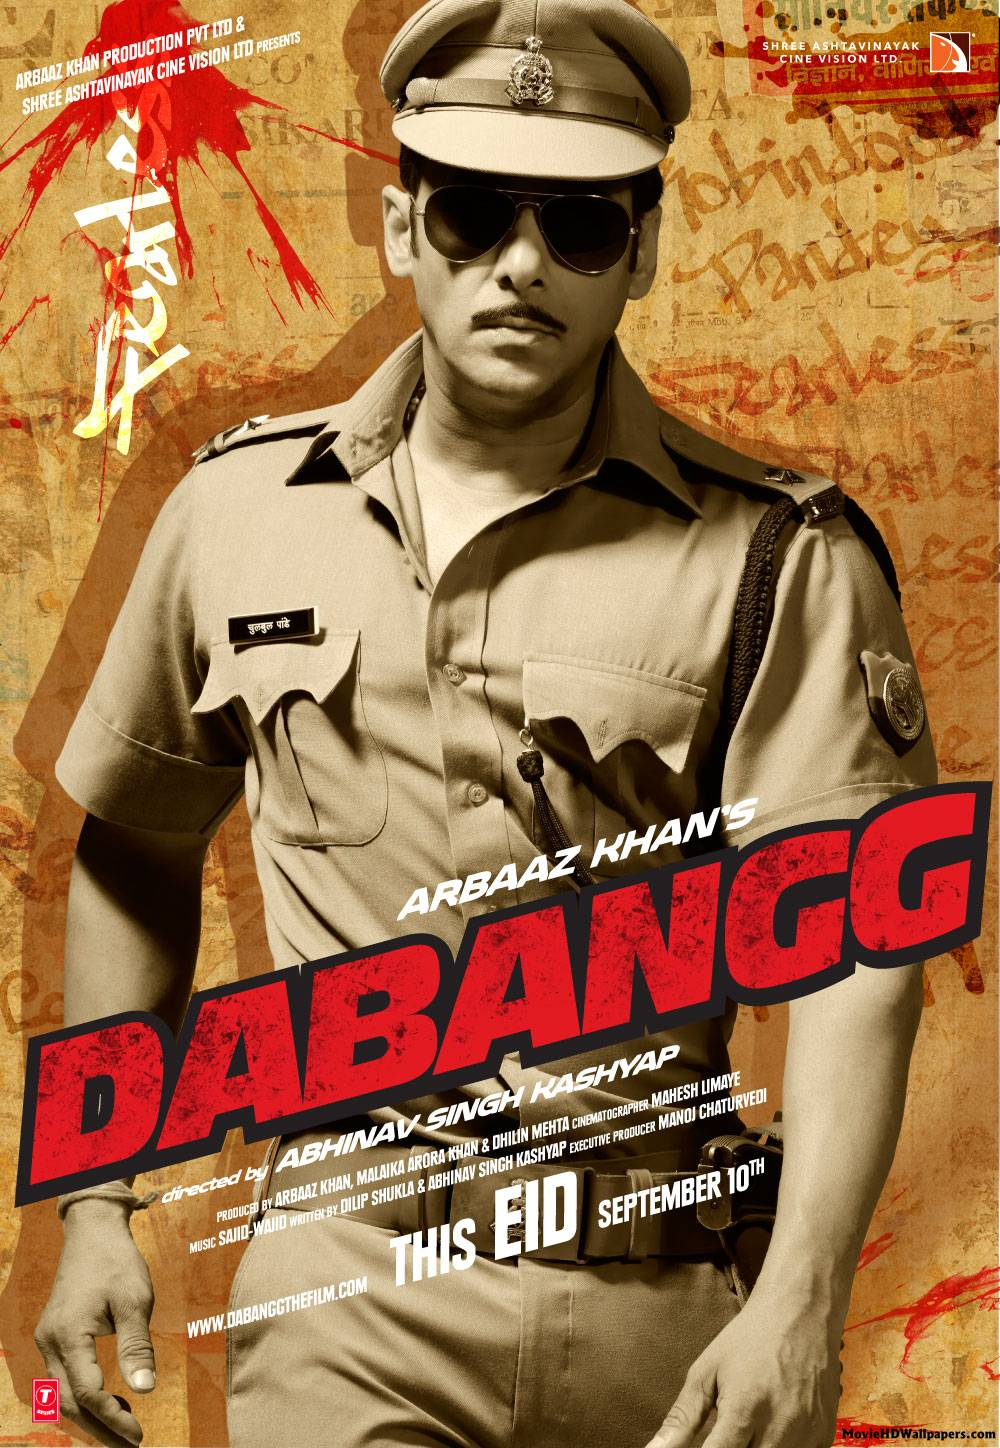 Dabangg (2010) - Movie HD Wallpapers Dabangg